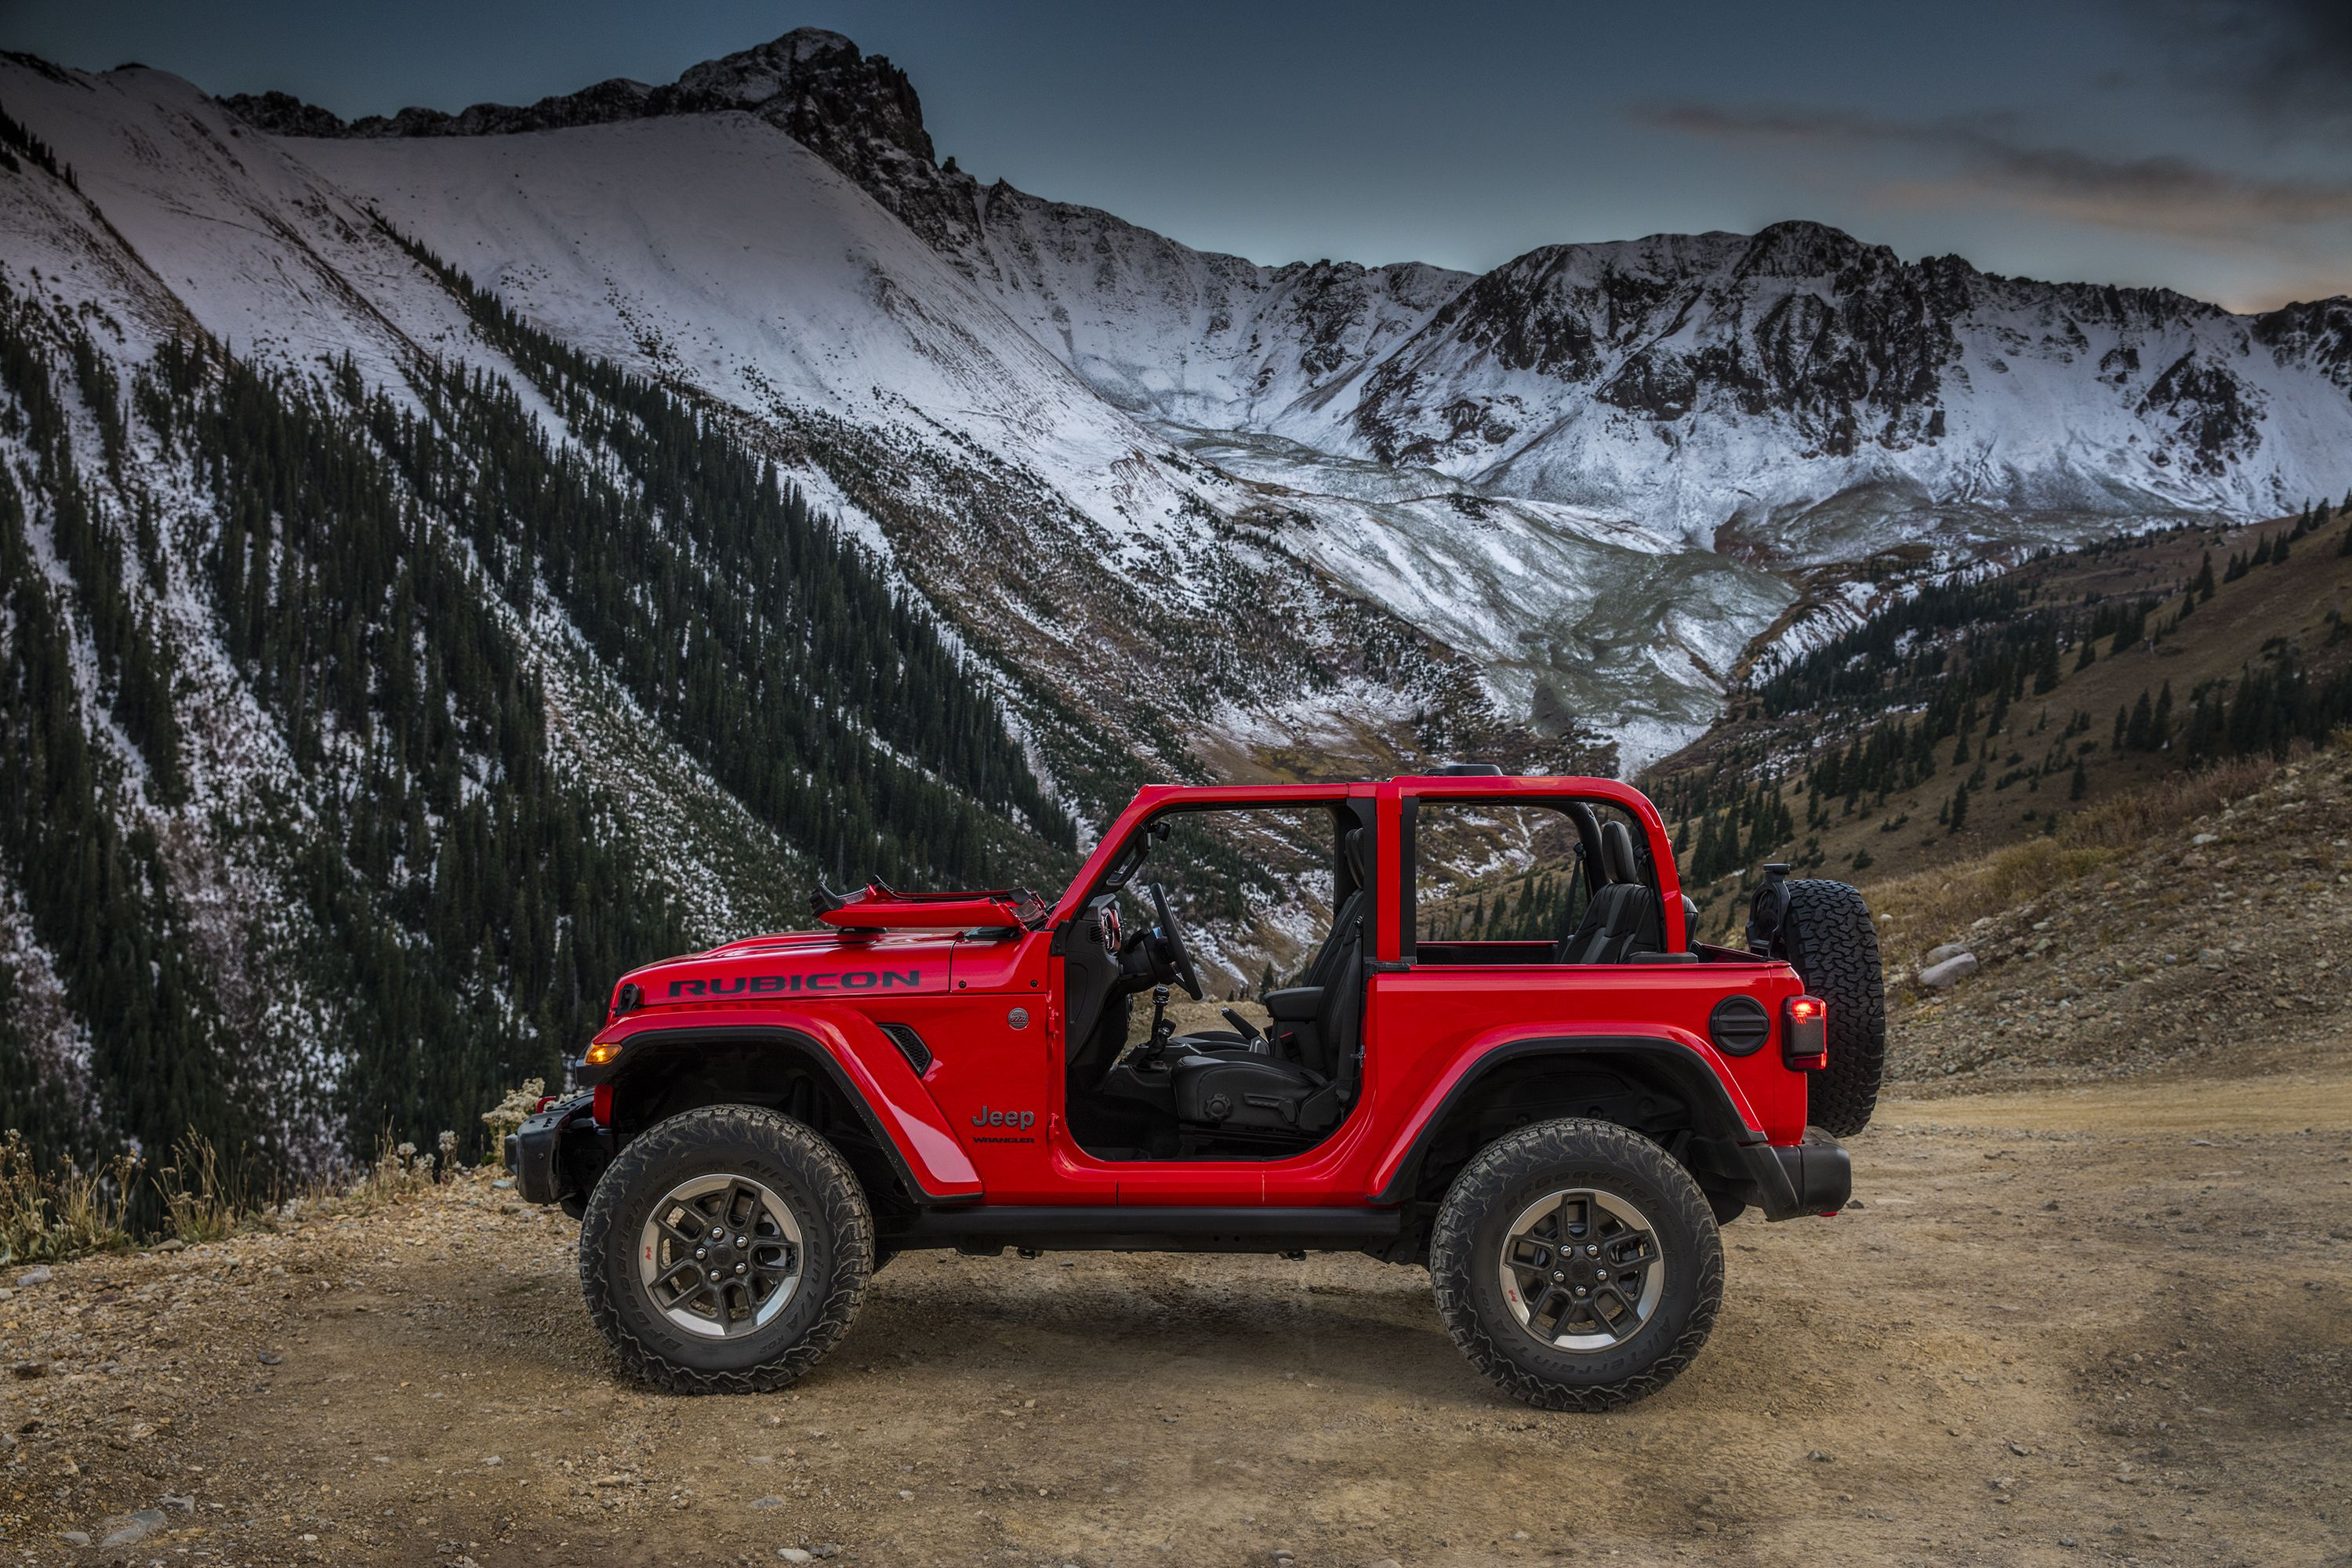 2018 Jeep Wrangler Everything We Know & 2018 Jeep Wrangler News Price Release Date - Details on the New JL